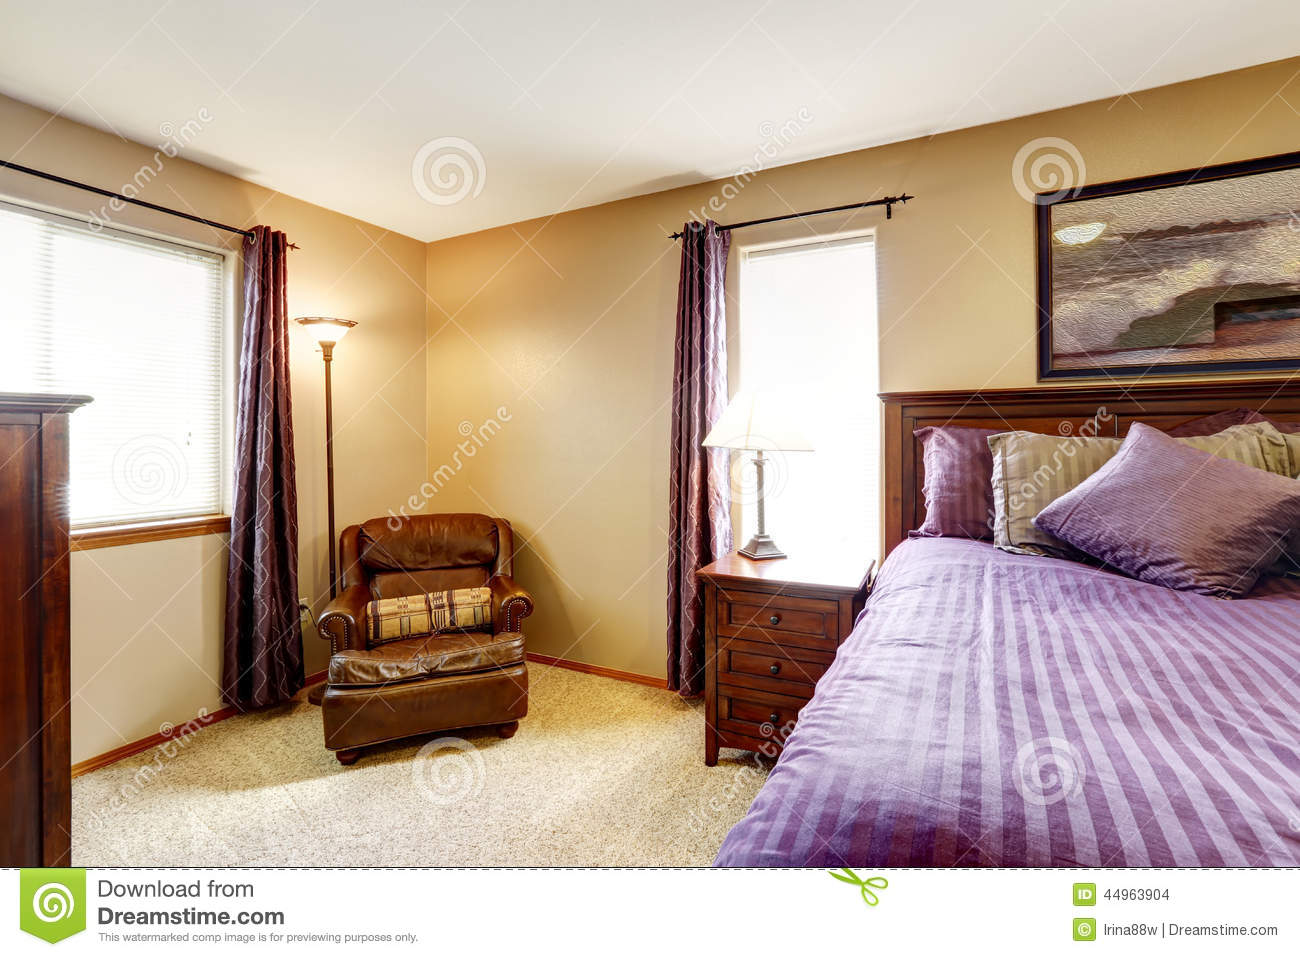 Luxury Bedroom Furniture With Bright Purple Bedding Stock Photo Image Of Interior Bright 44963904